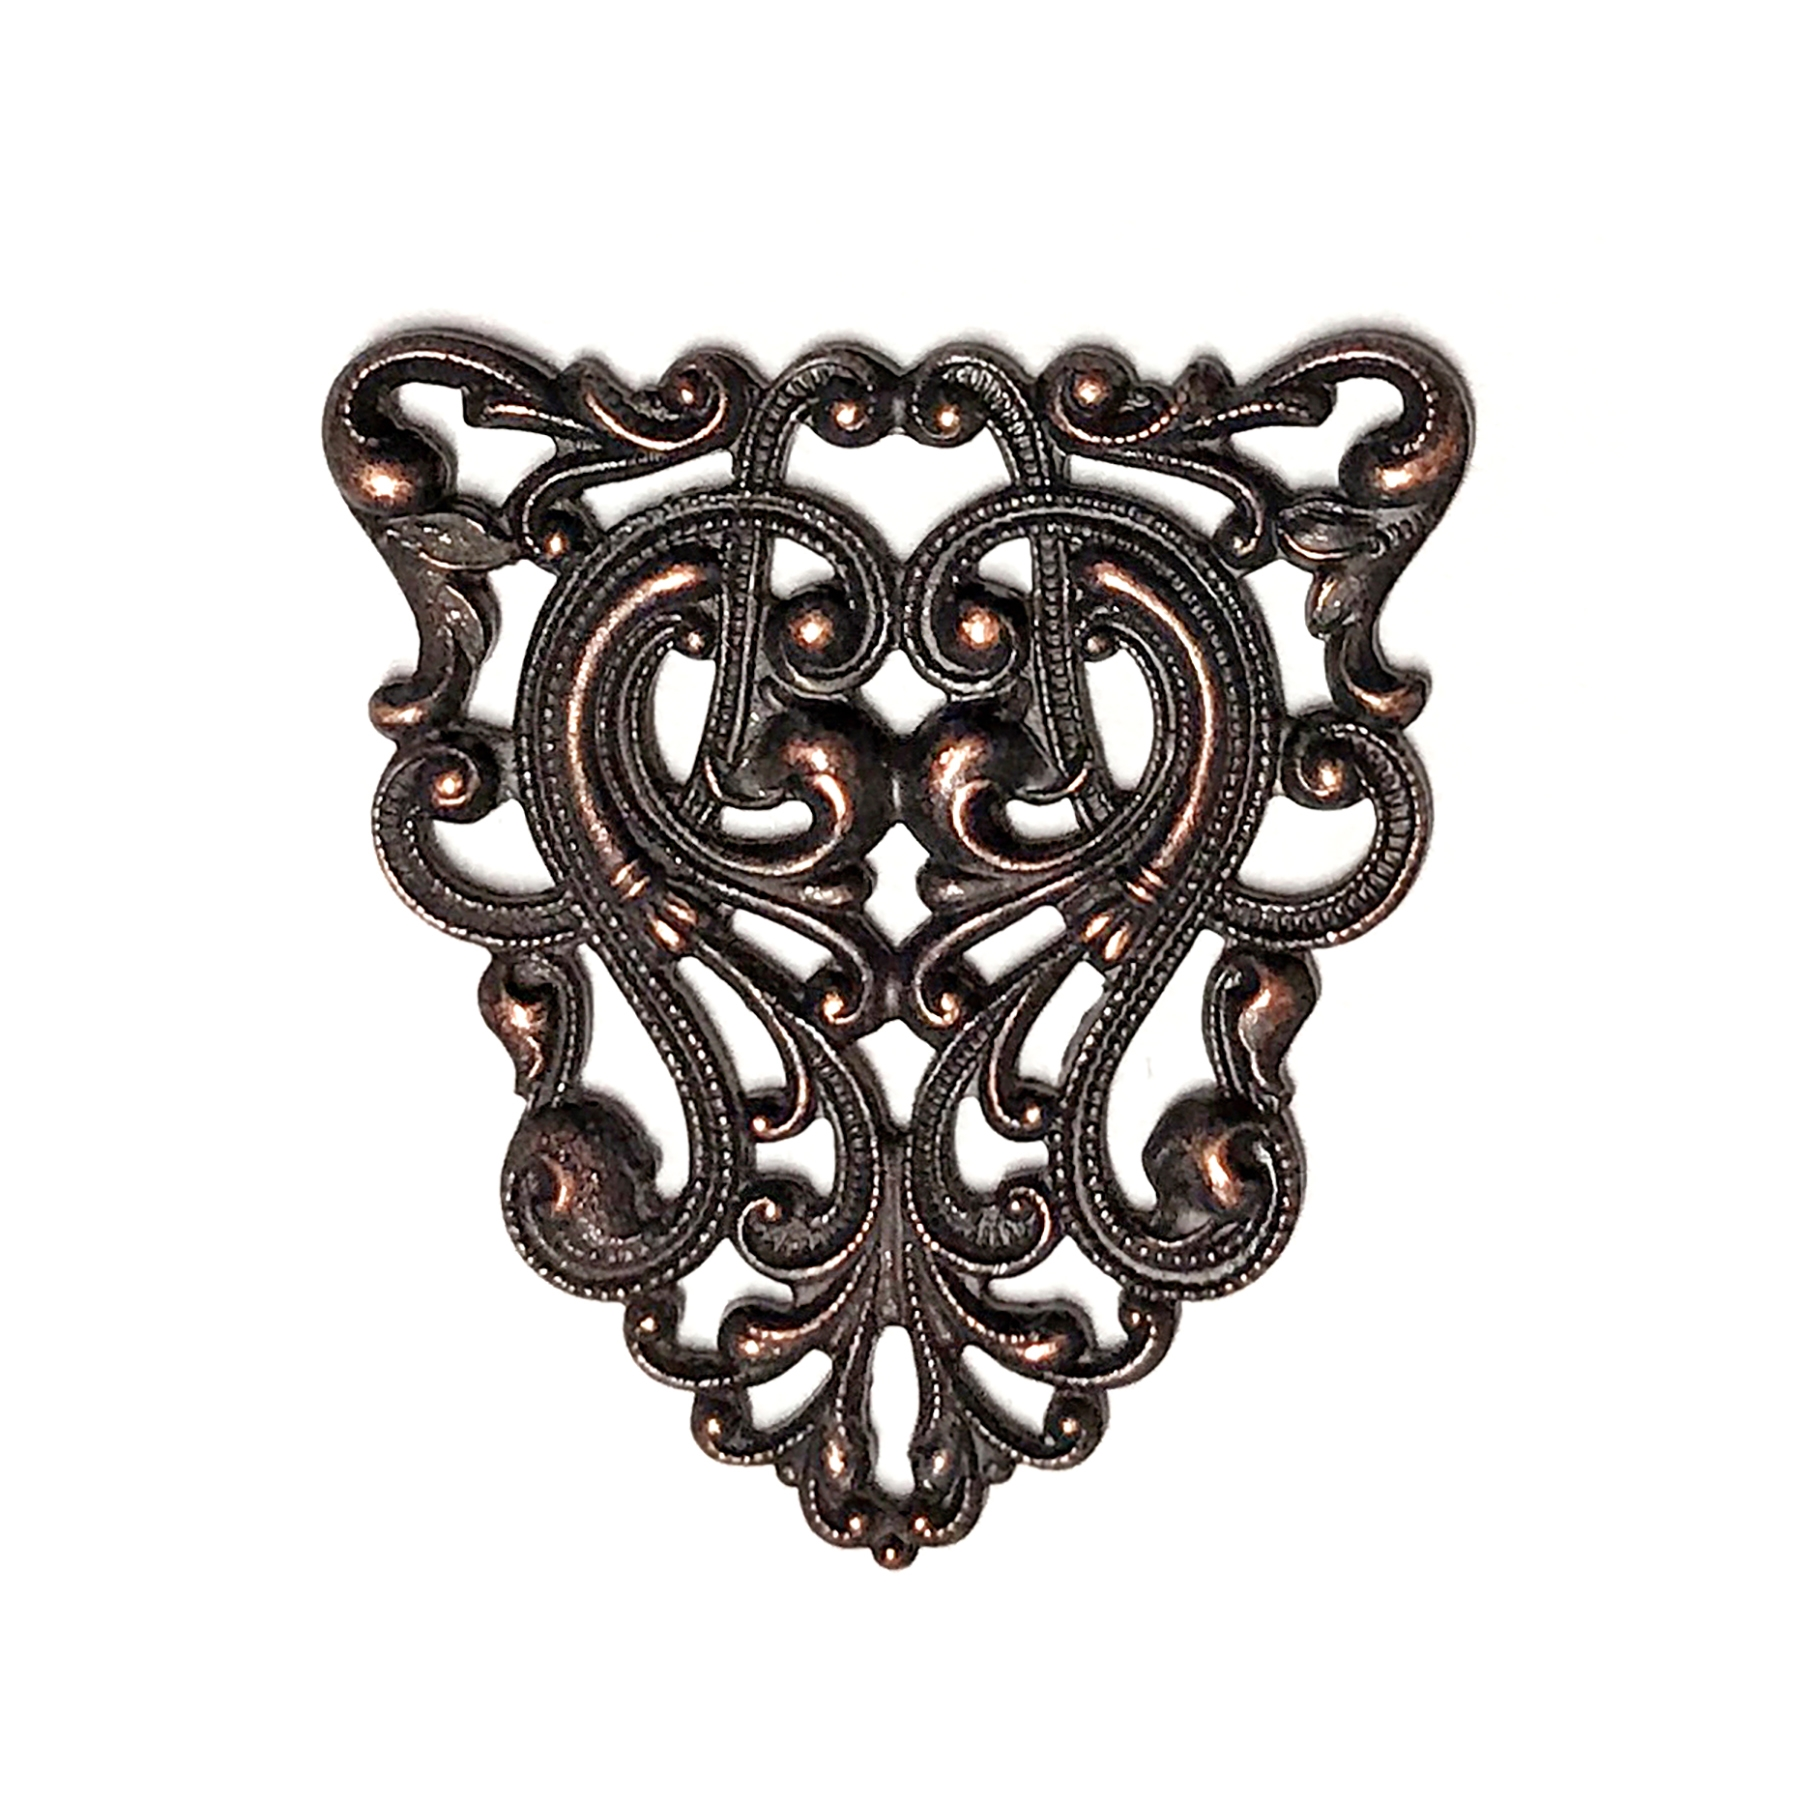 art nouveau filigree, rusted iron brass, filigree, art nouveau, brass stamping, 40x37mm, rusted iron, brass, stamping, filigree stamping, us made, nickel free, B'sue Boutiques, jewelry making, jewelry supplies, jewelry findings, vintage supplies, 03510